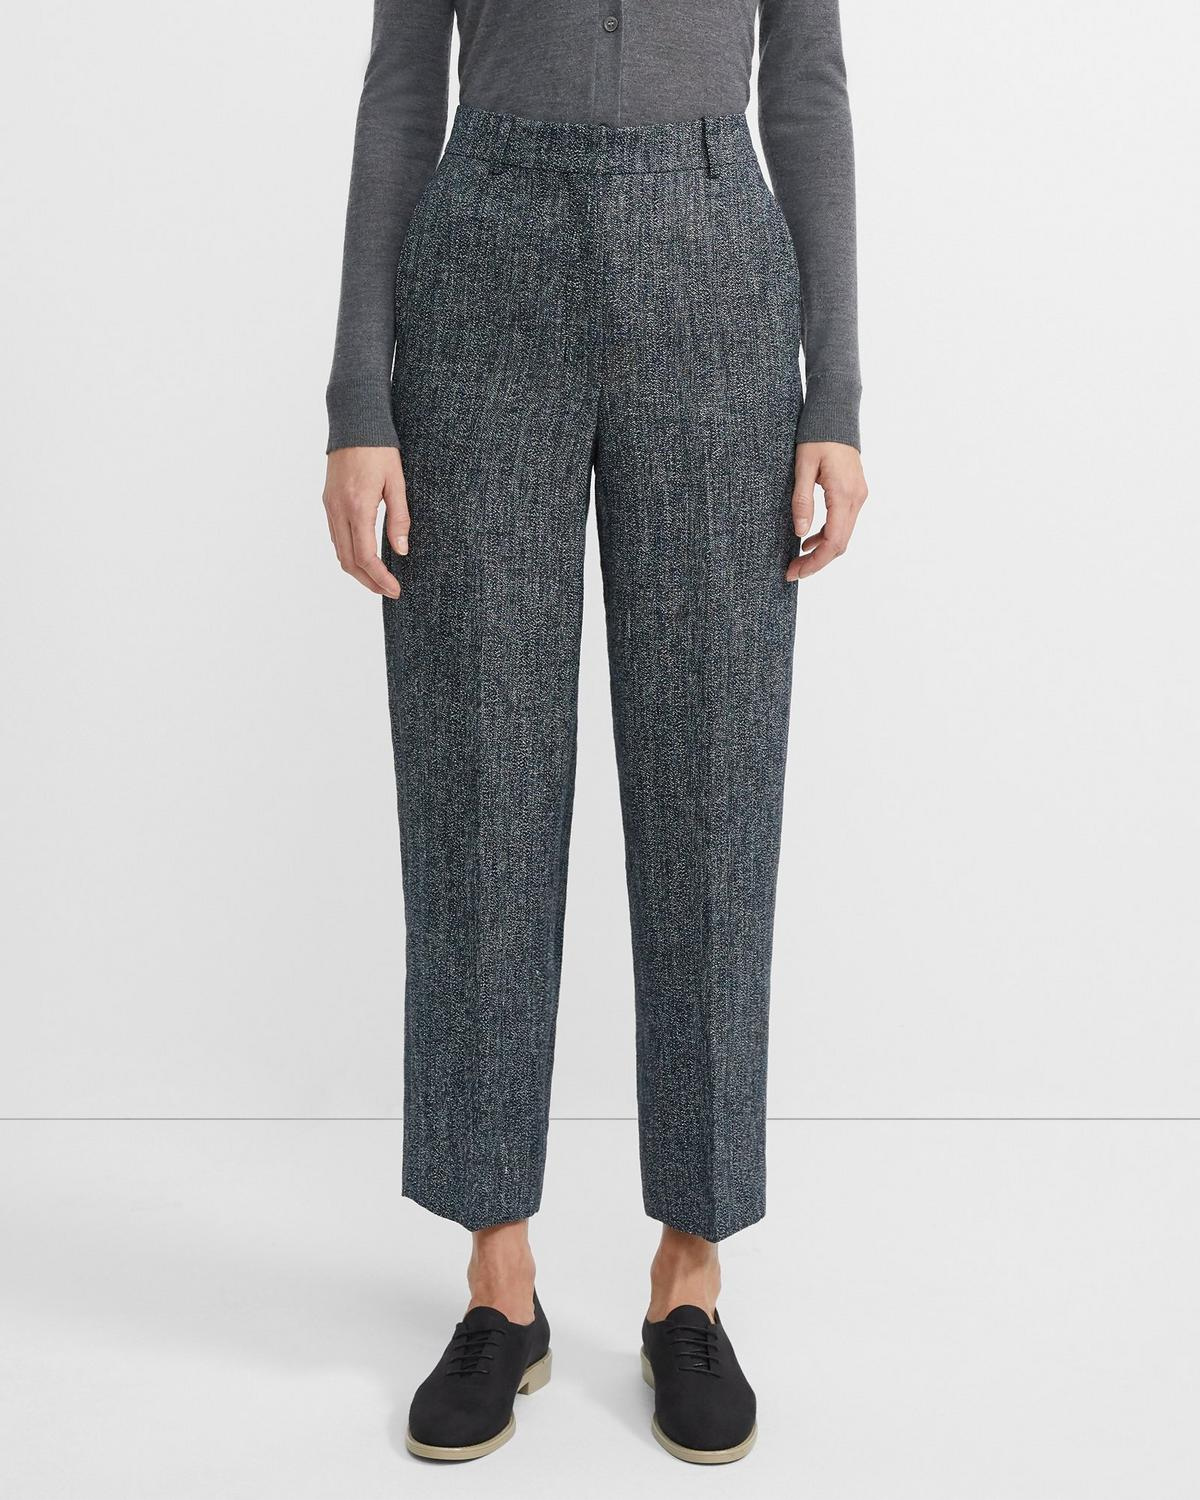 High-Waisted Straight Trouser